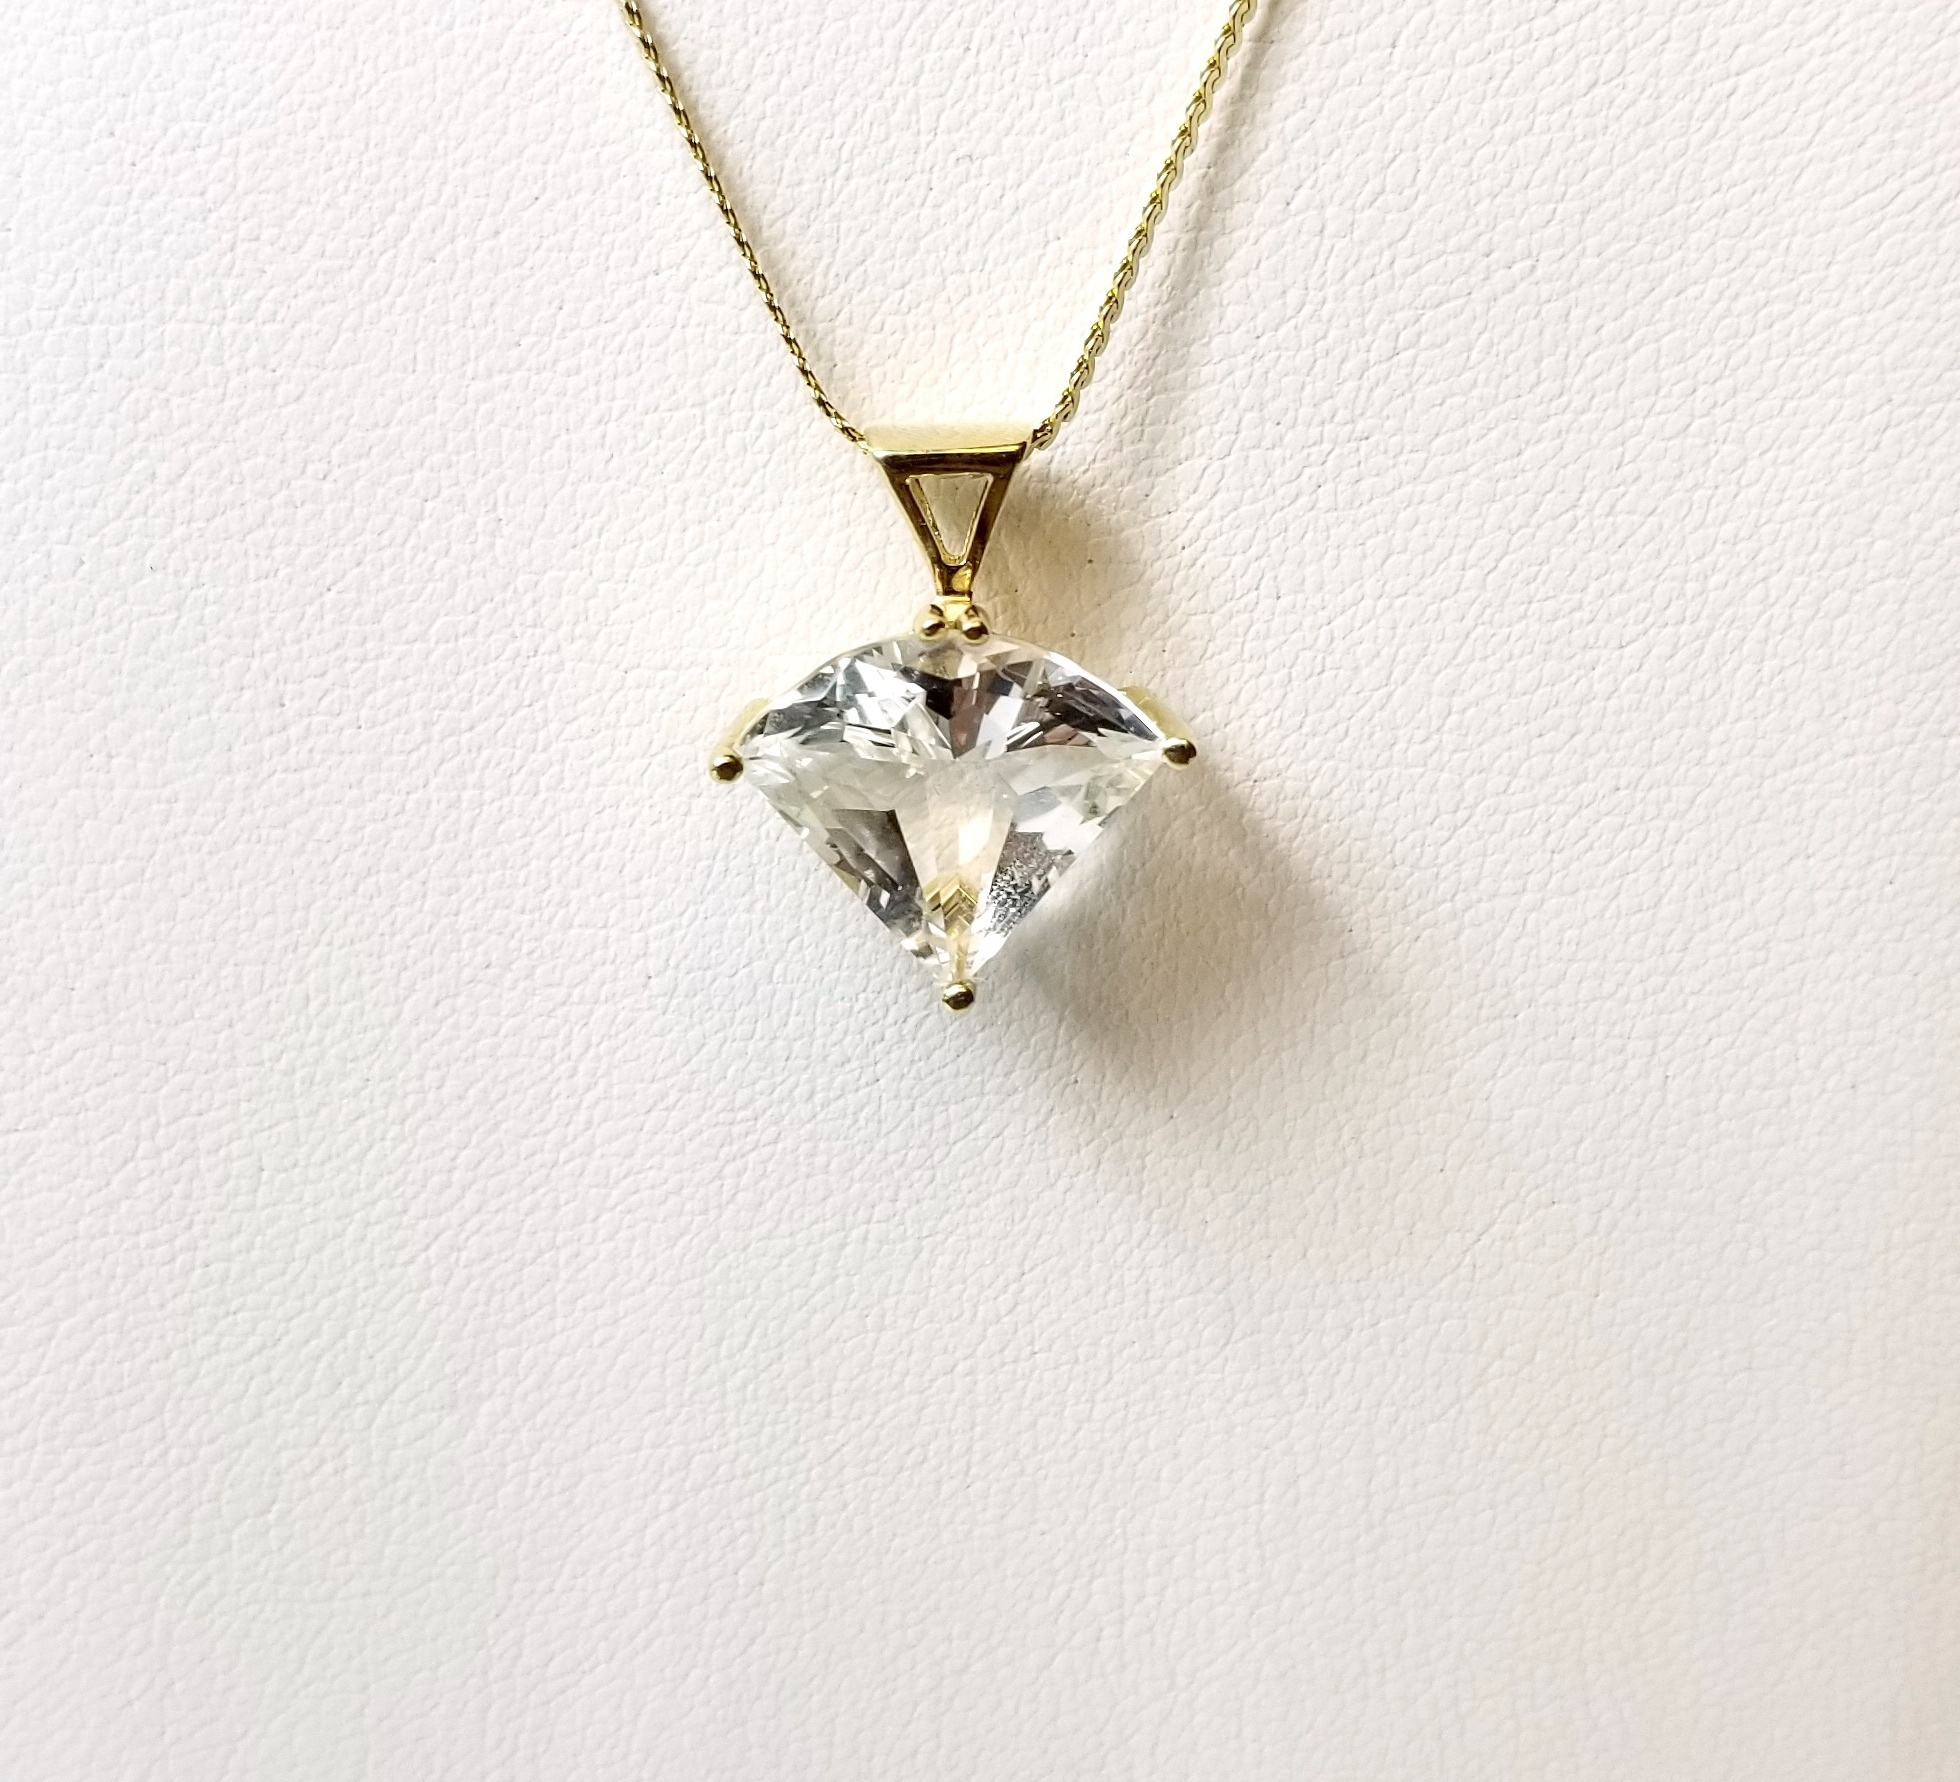 14K Yellow Gold 3.10g with Clear Stone Pendant